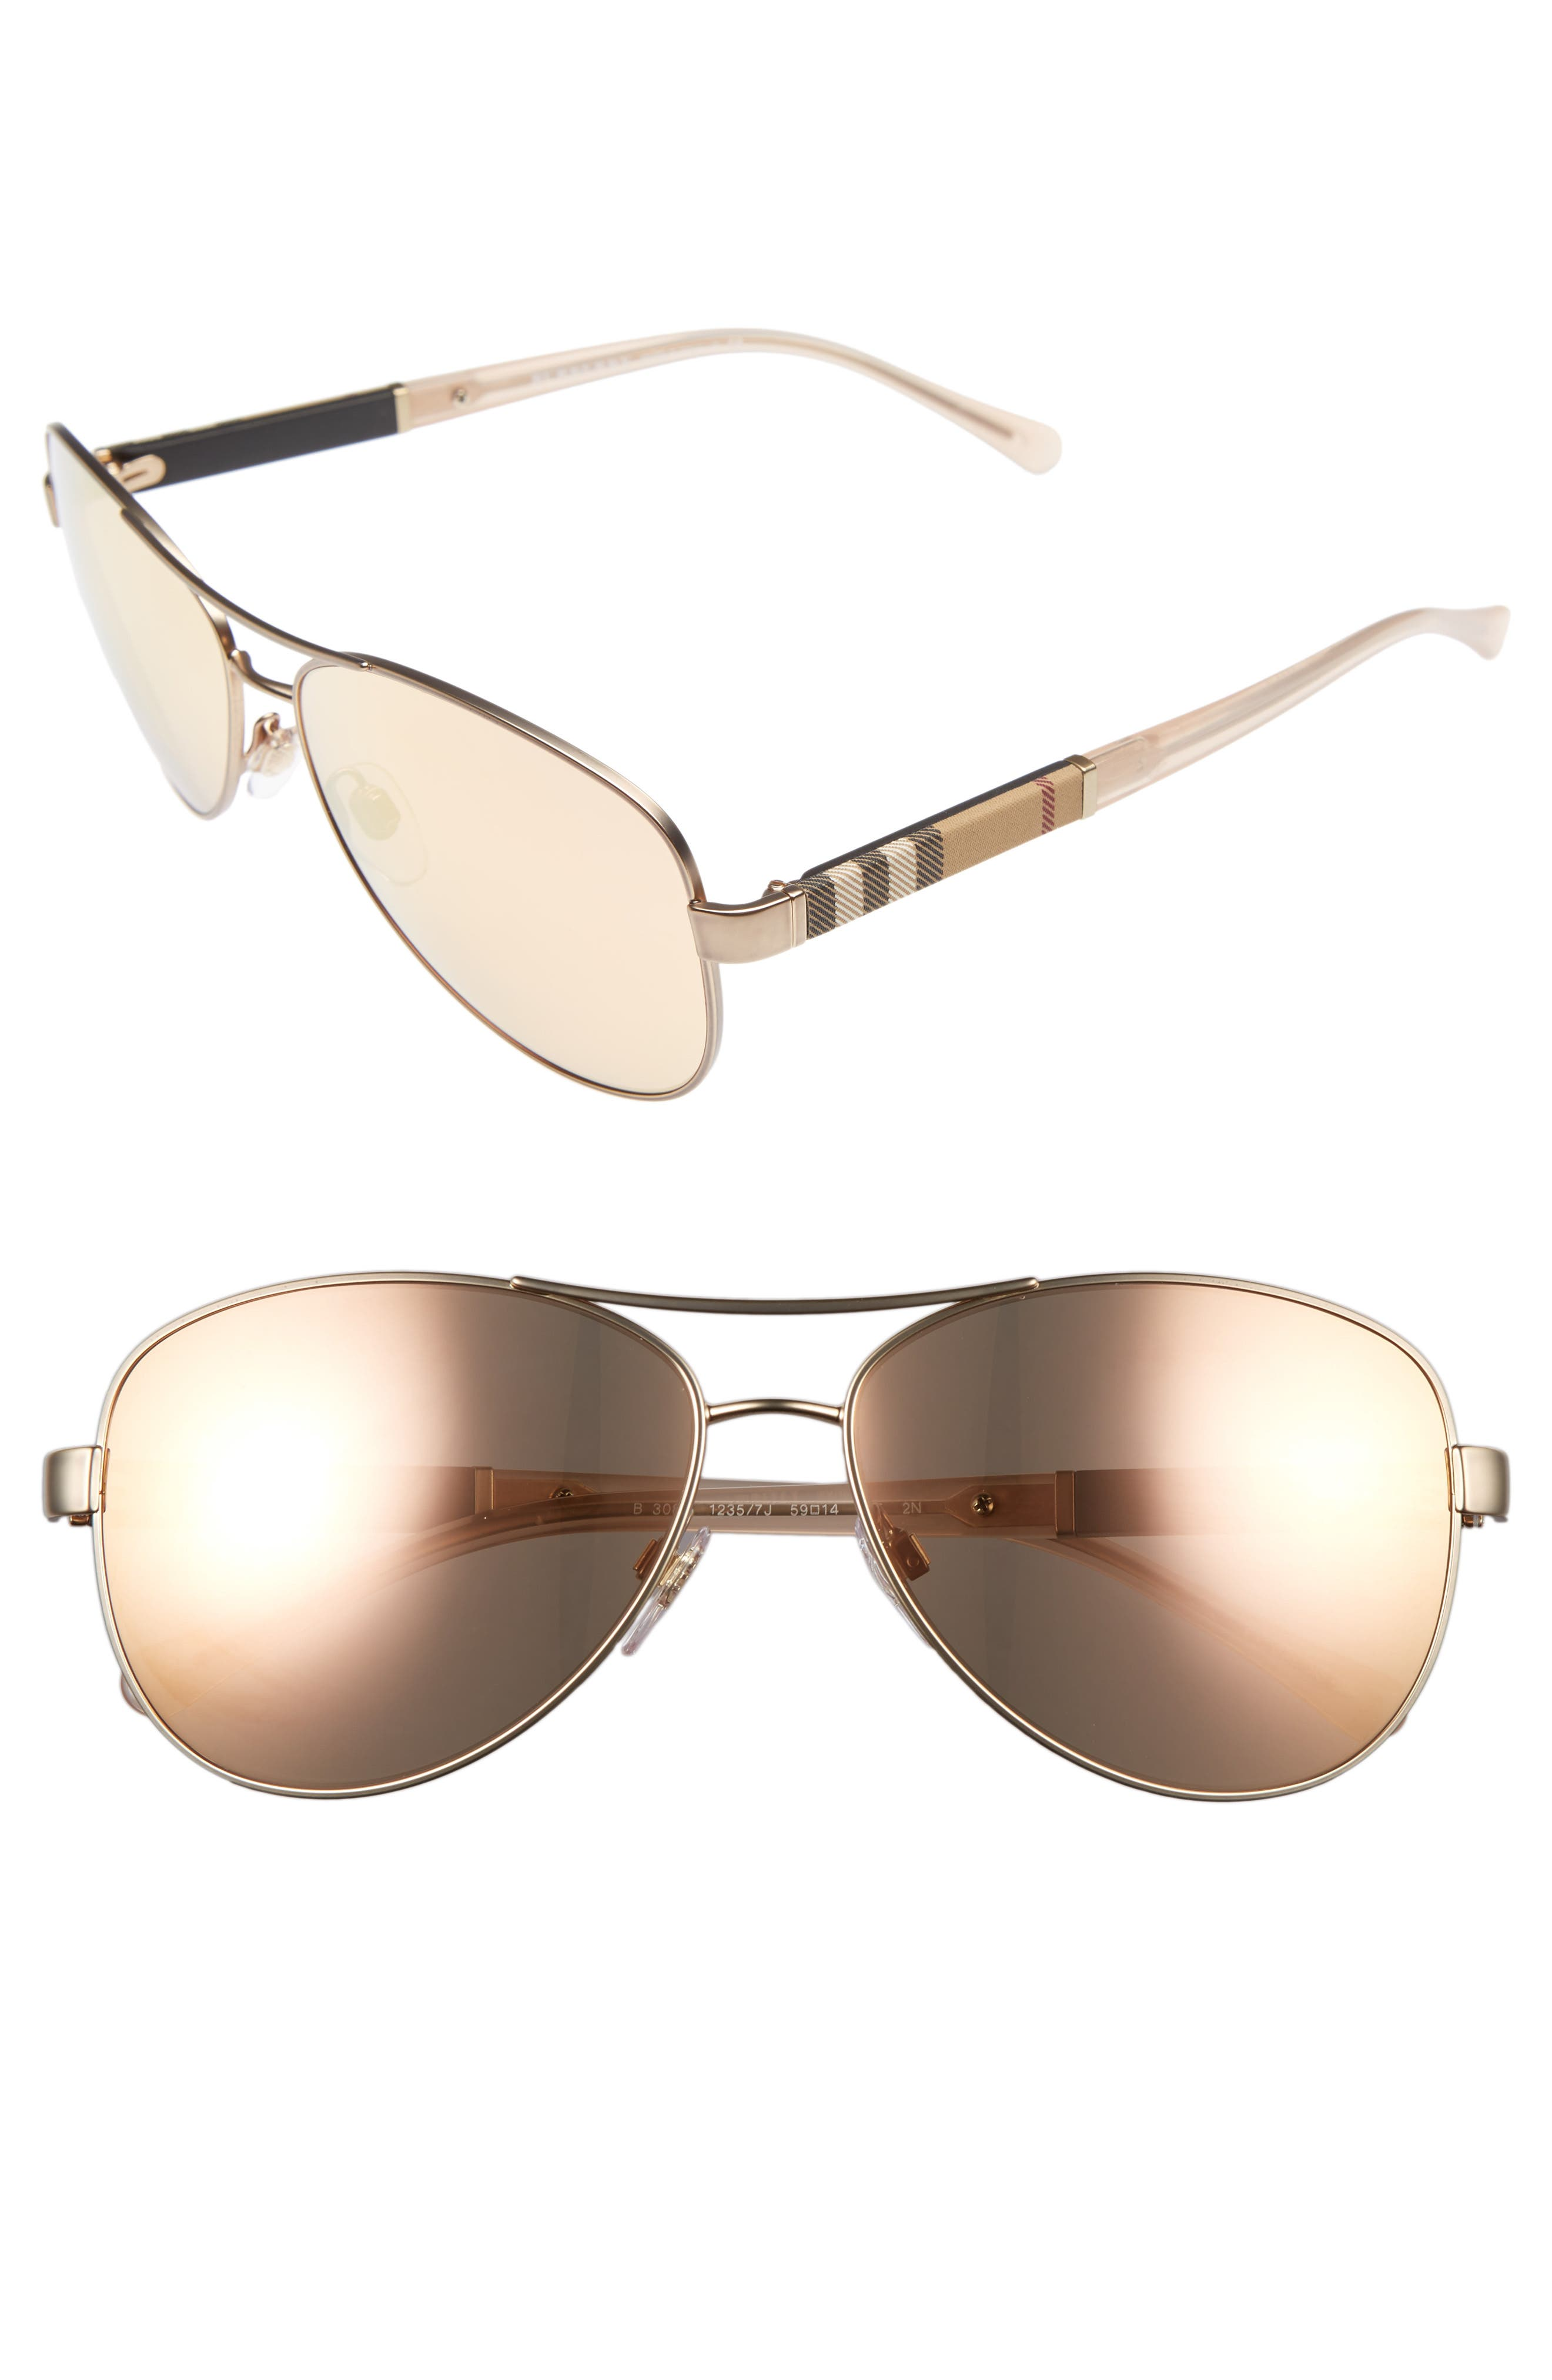 59mm Mirrored Aviator Sunglasses,                             Main thumbnail 1, color,                             Matte Gold